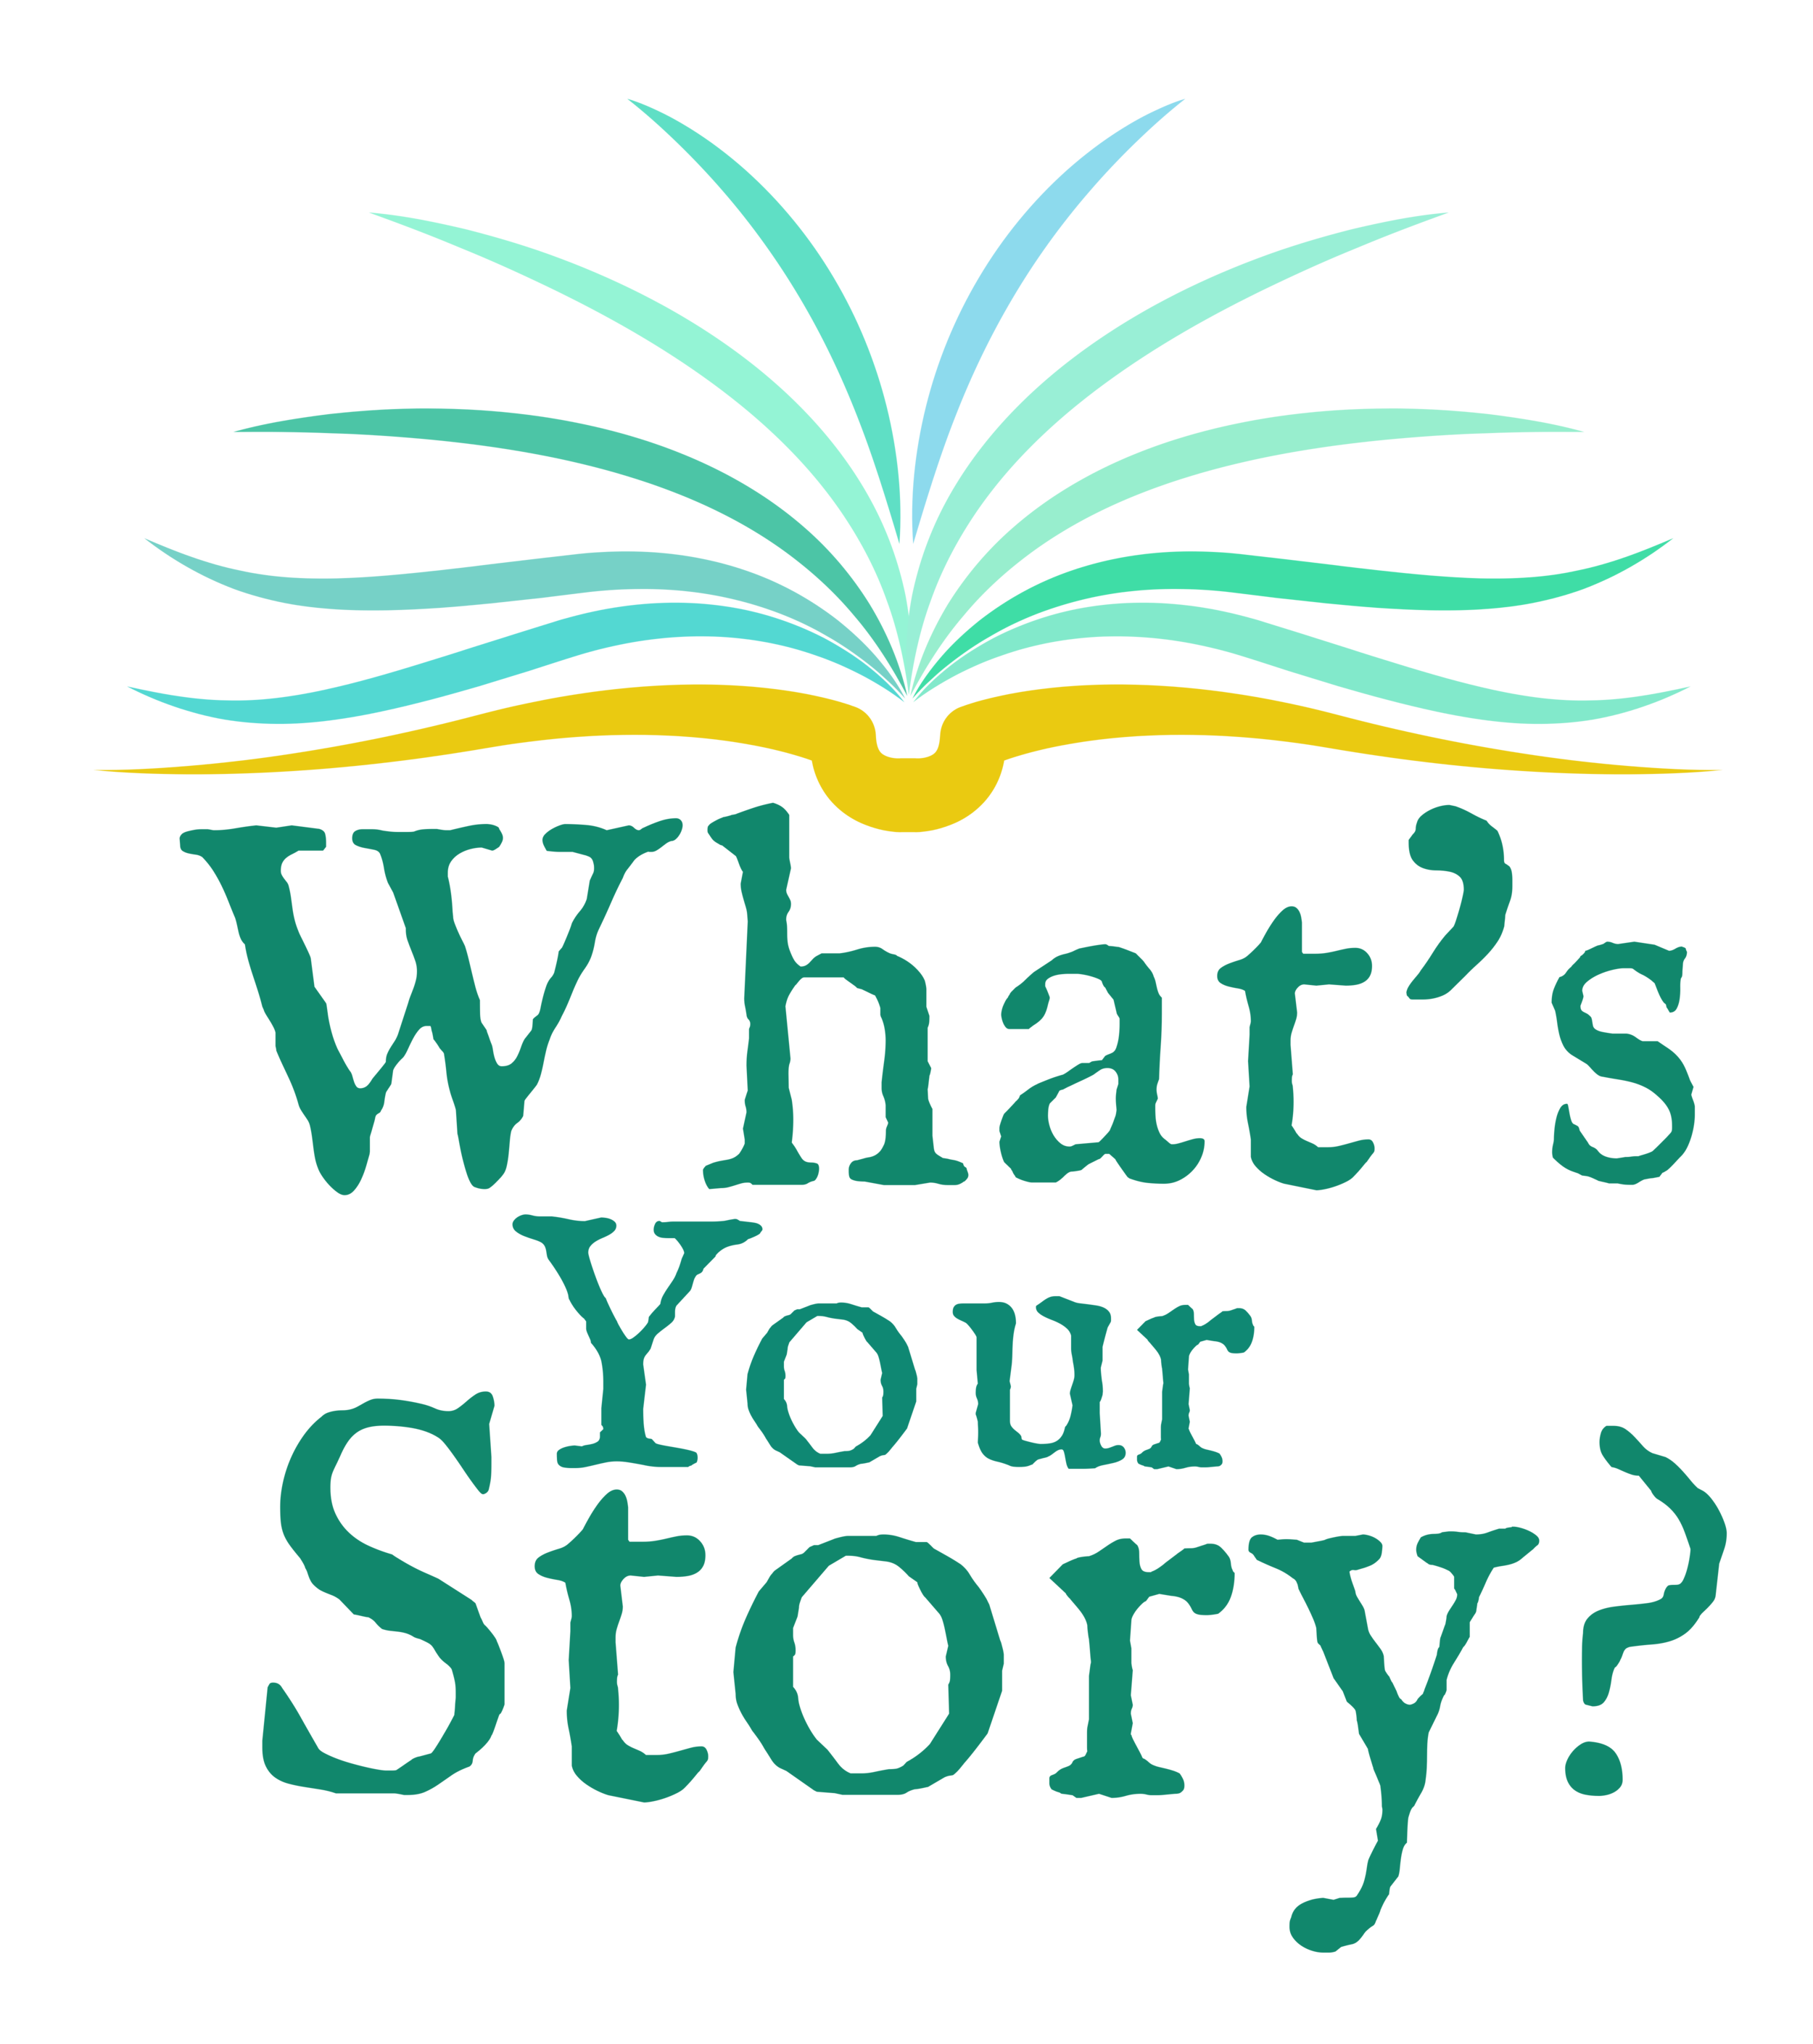 logo whats your story storyteller agency logo.png